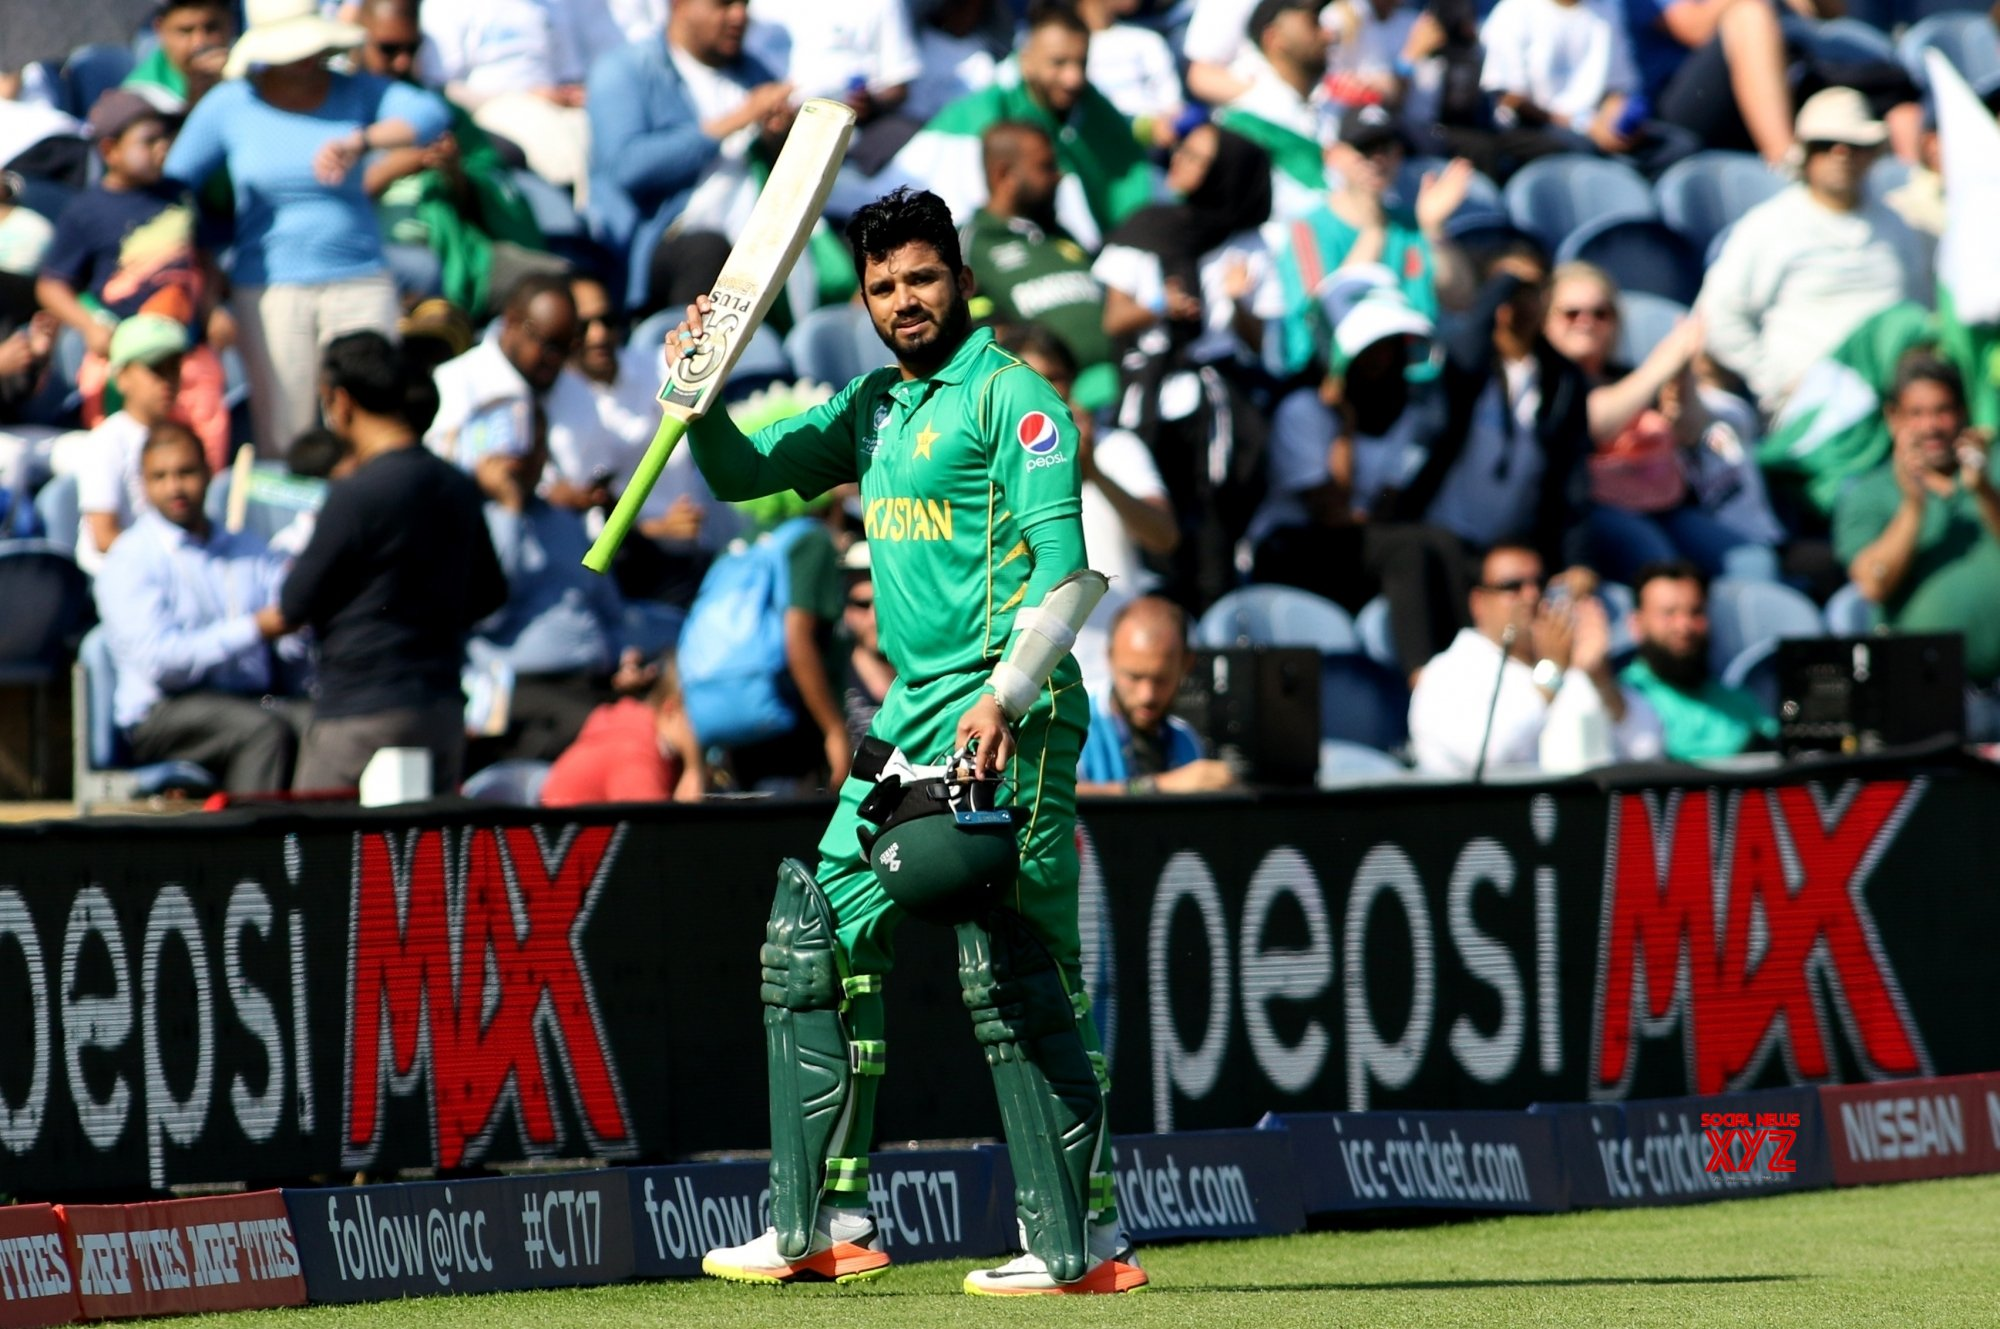 Pakistan vs England: Men in Green depart for tour